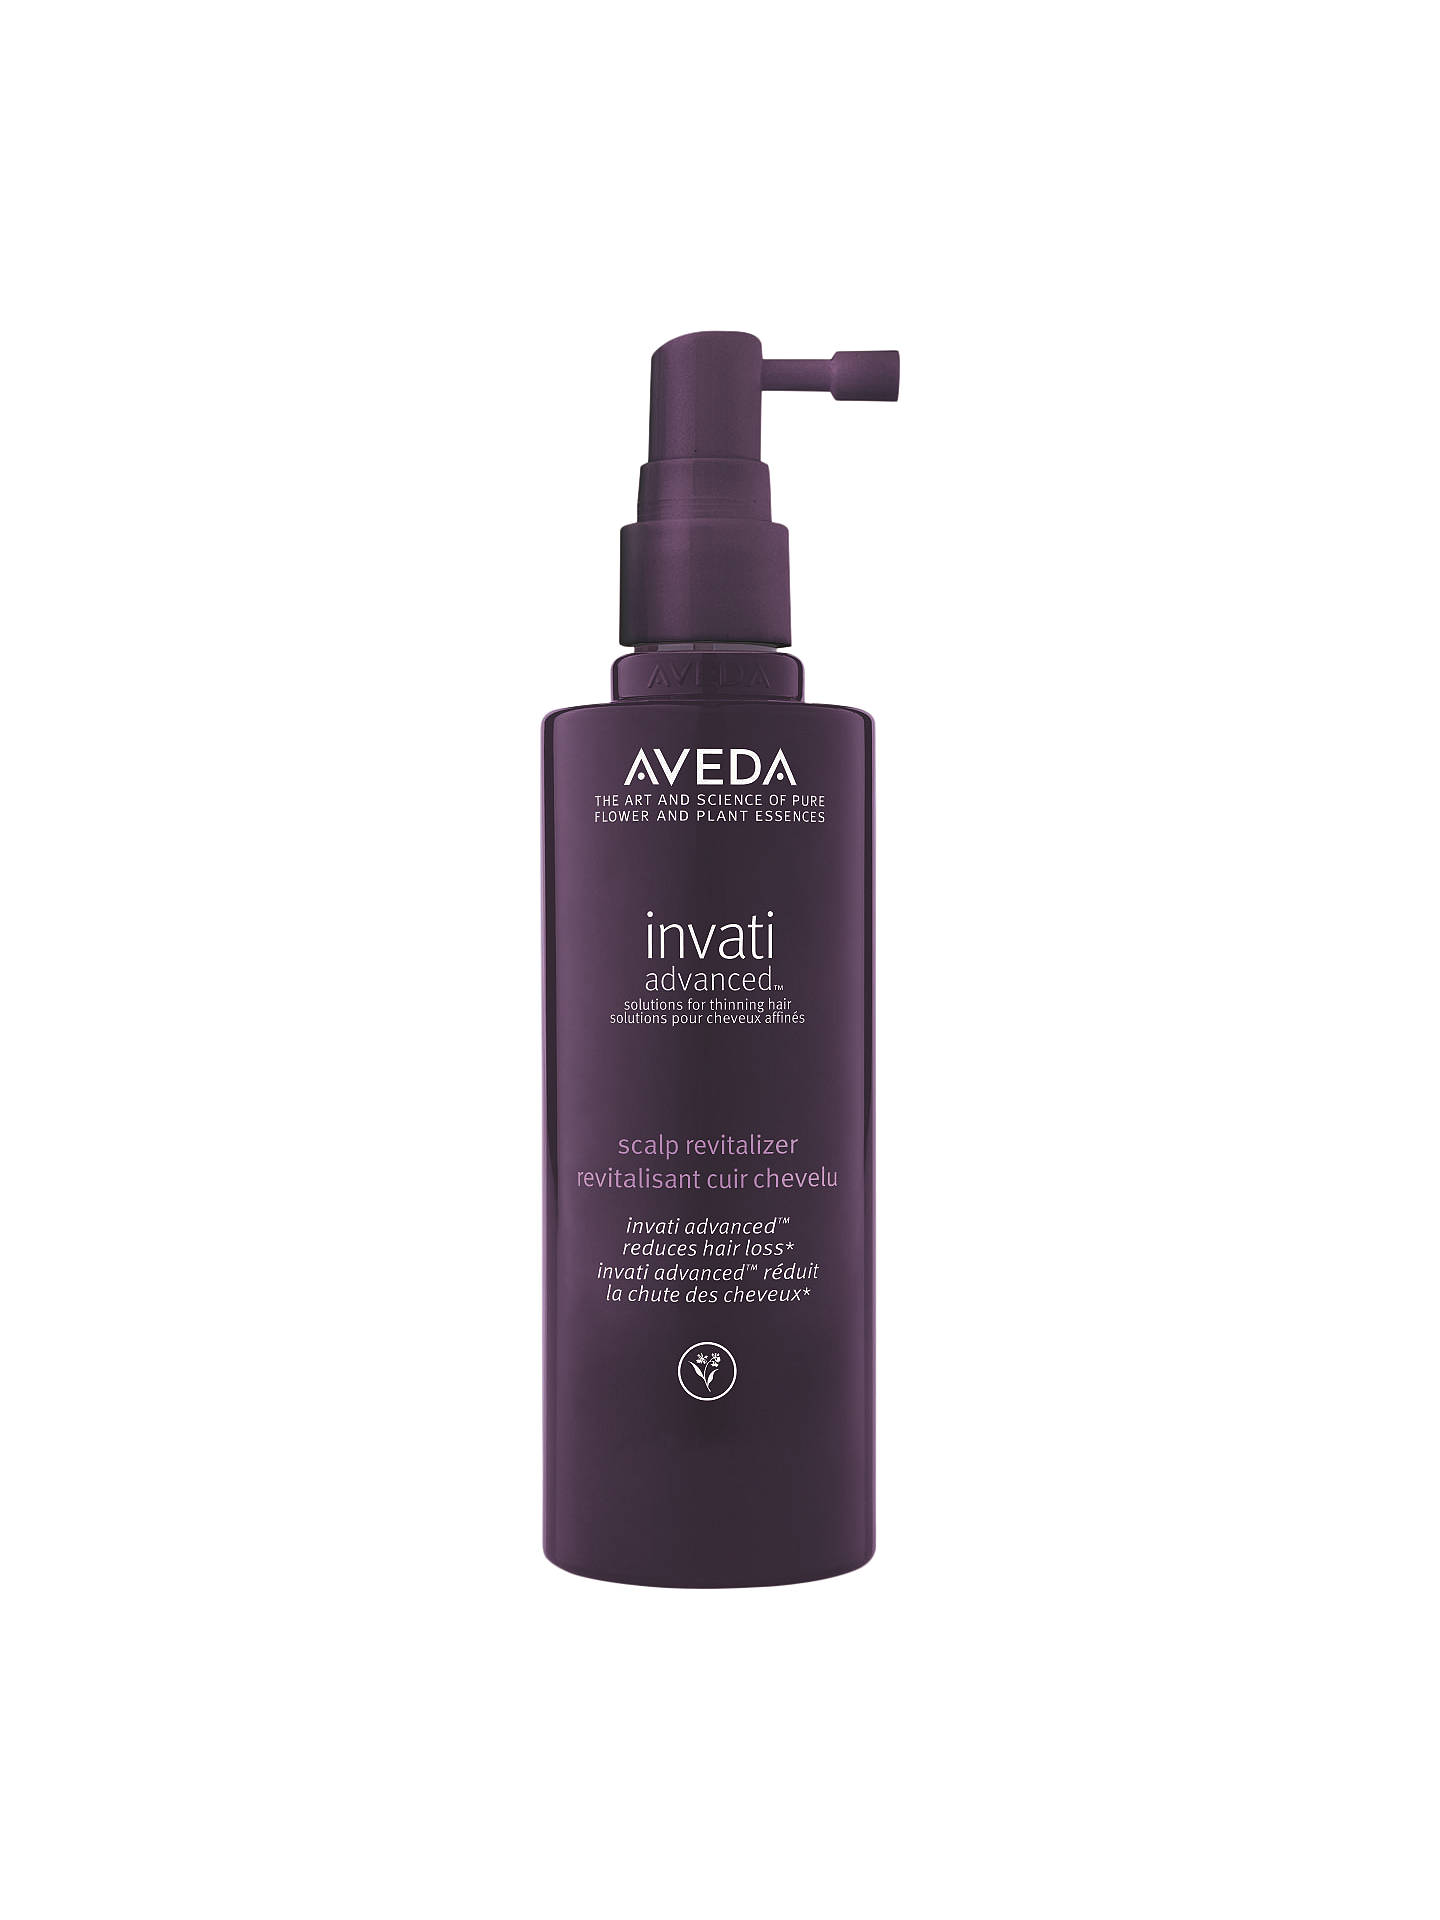 BuyAVEDA Invati Advanced™ Scalp Relitalizer, 150ml Online at johnlewis.com